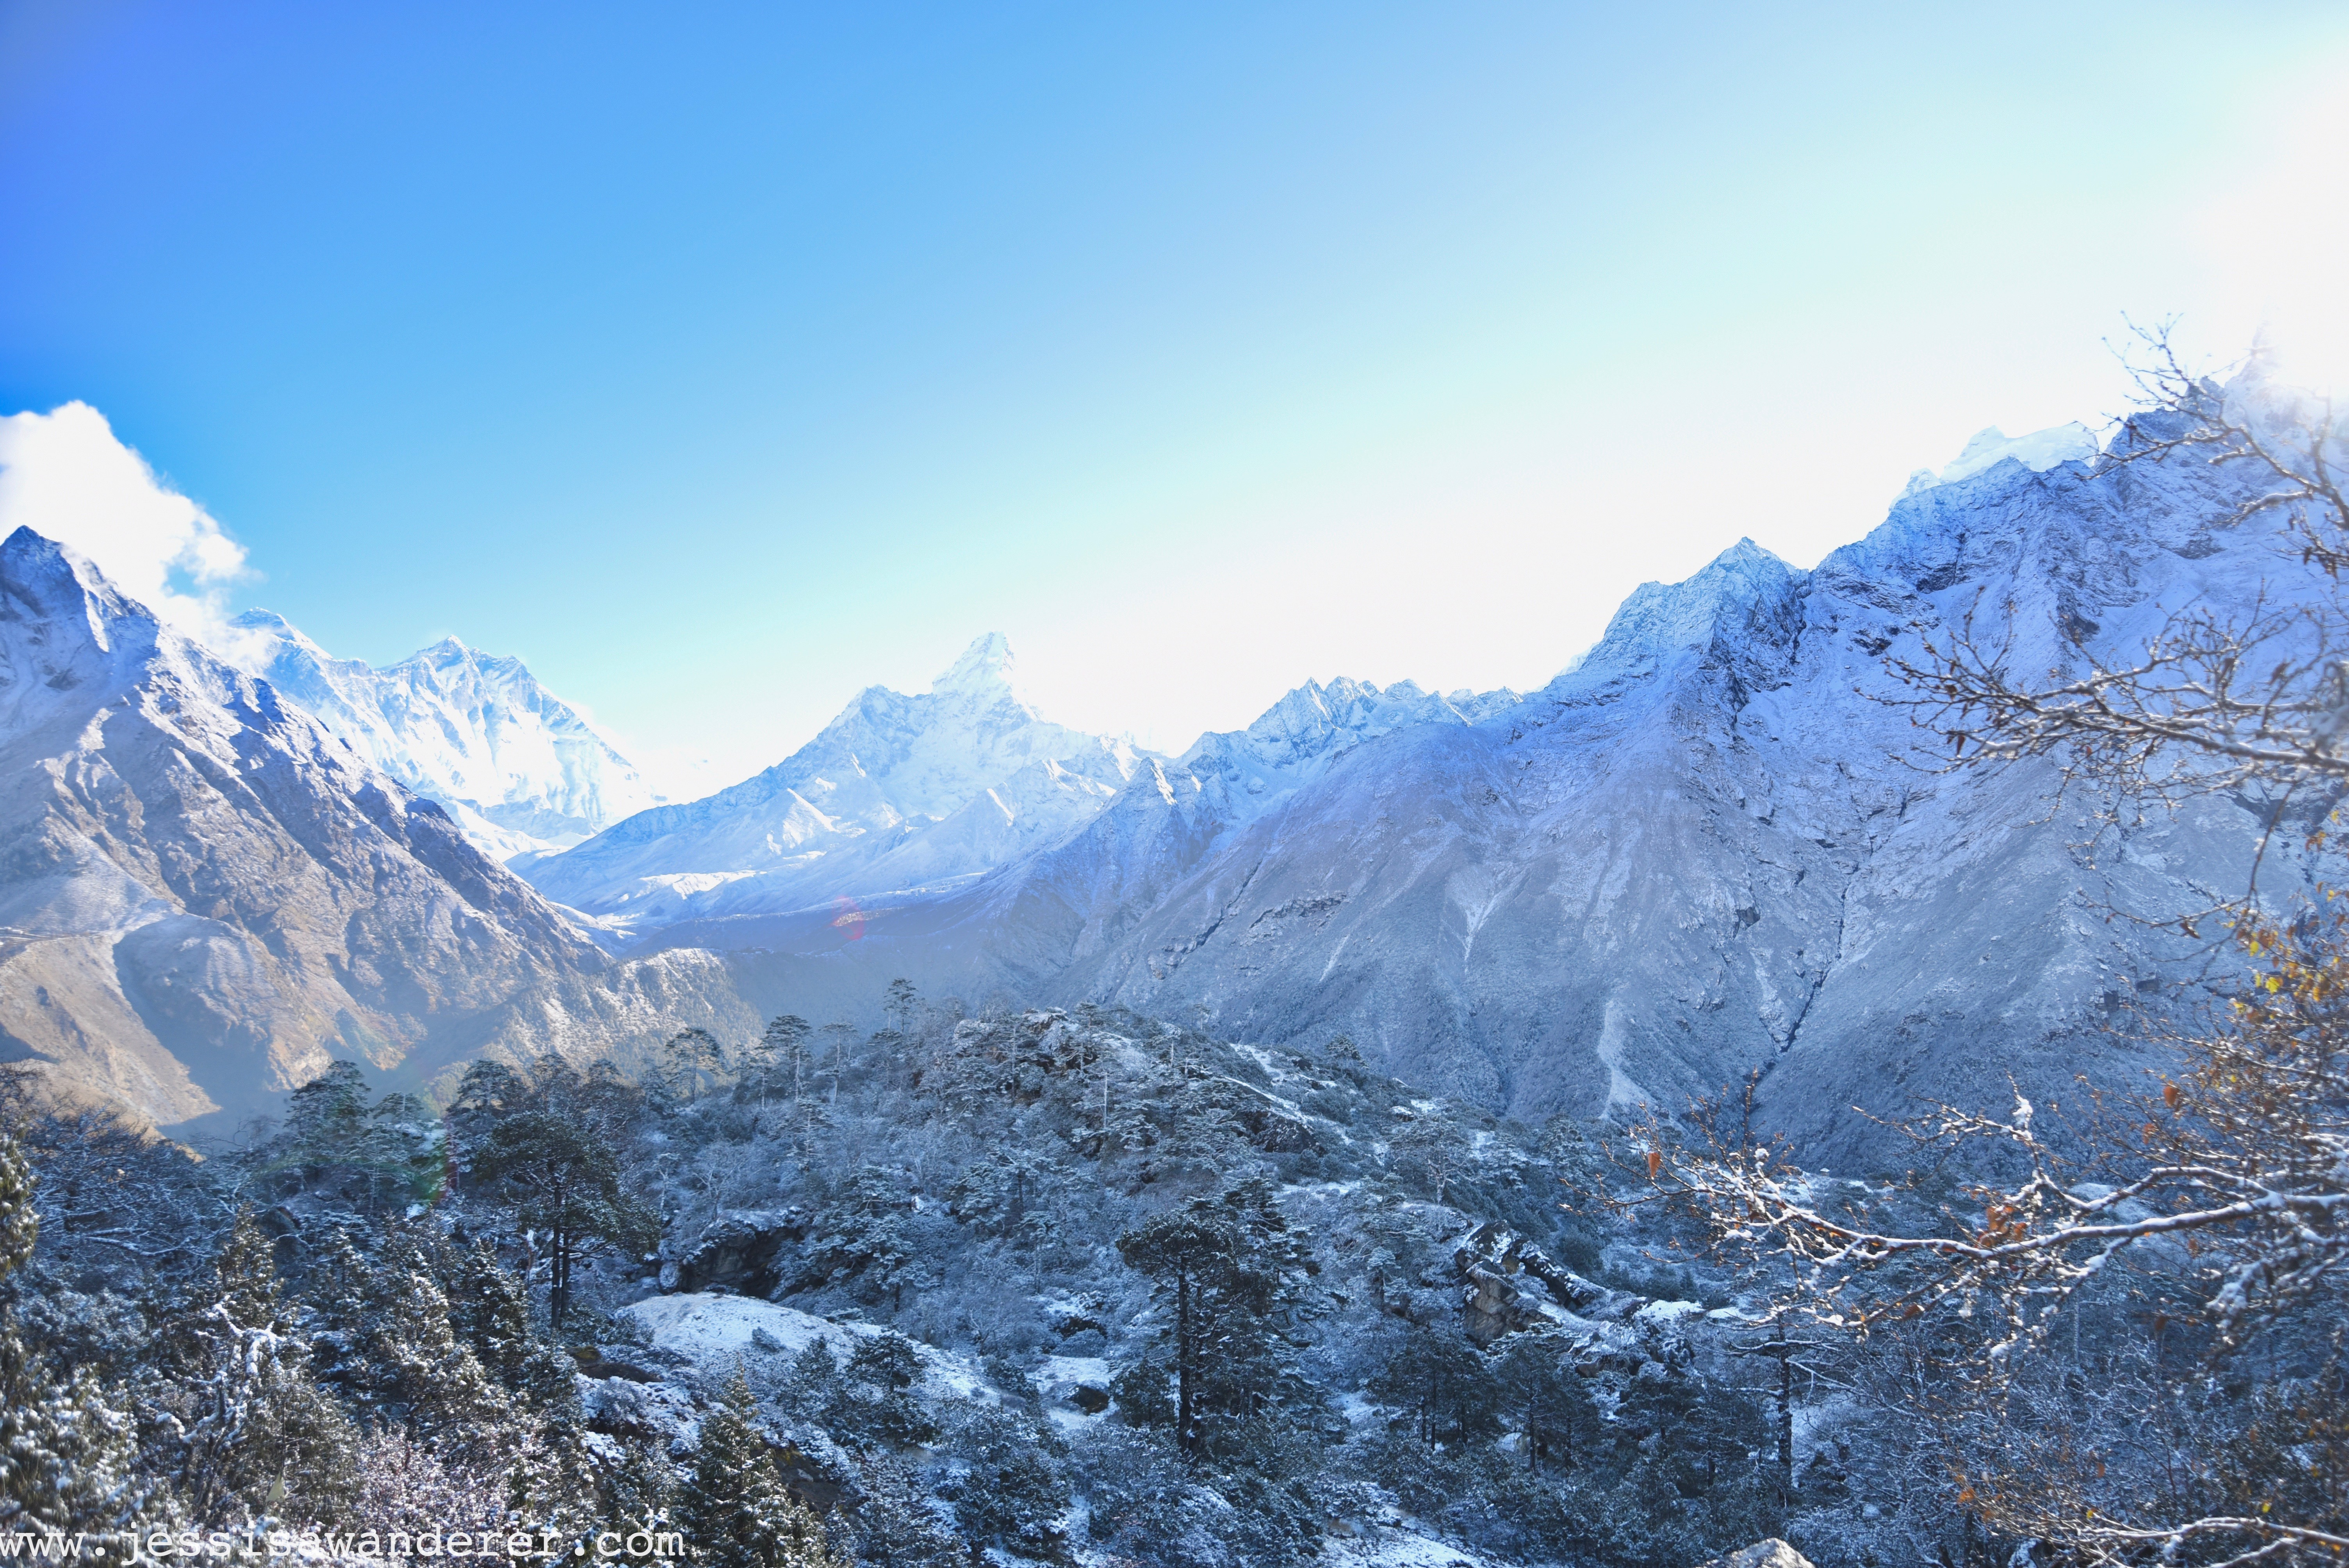 Looking out to Everest